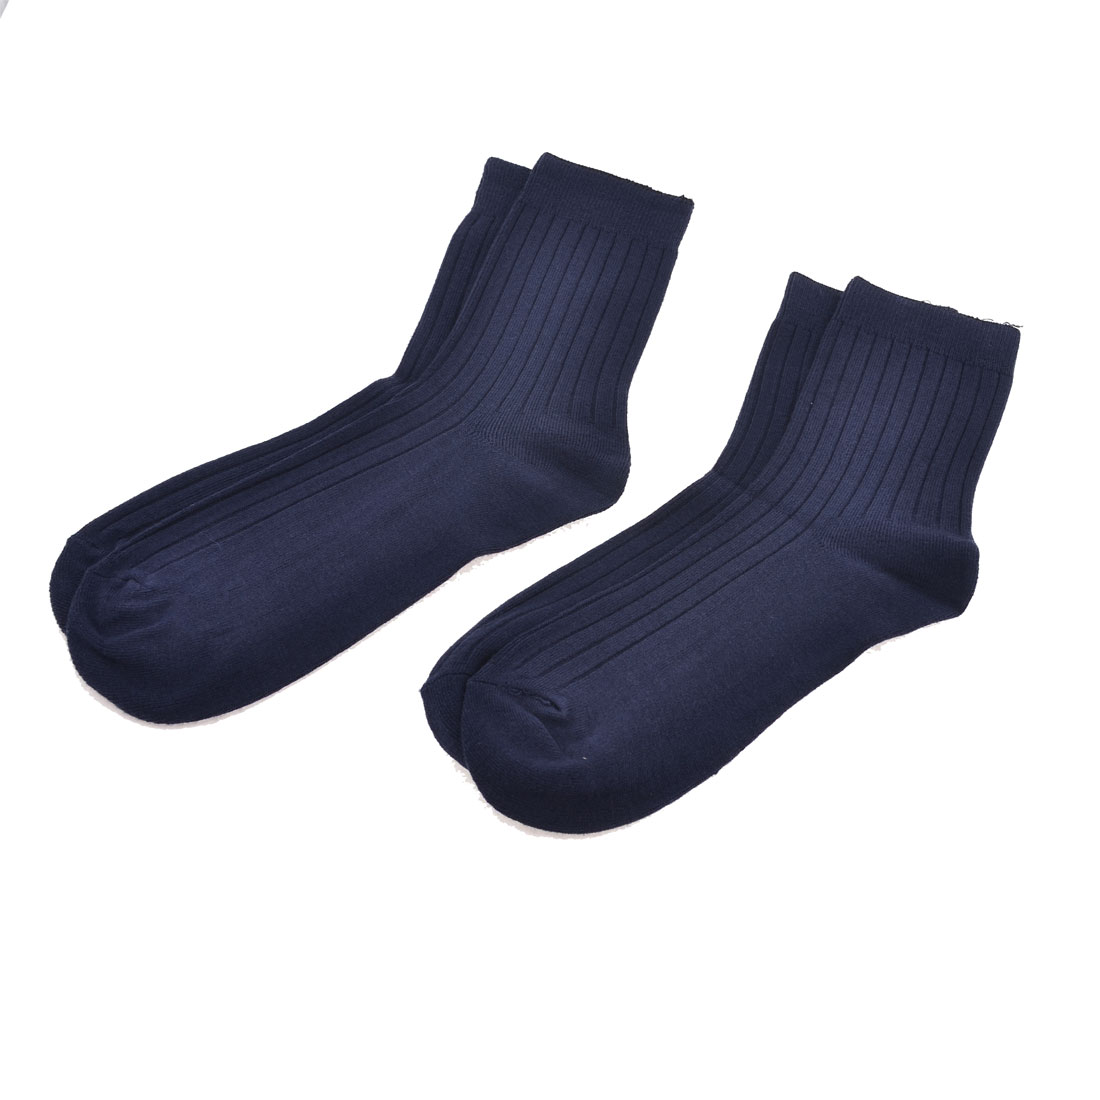 2 Pairs Dark Blue Cotton Blends Ribbed Elastic Warm Socks for Men